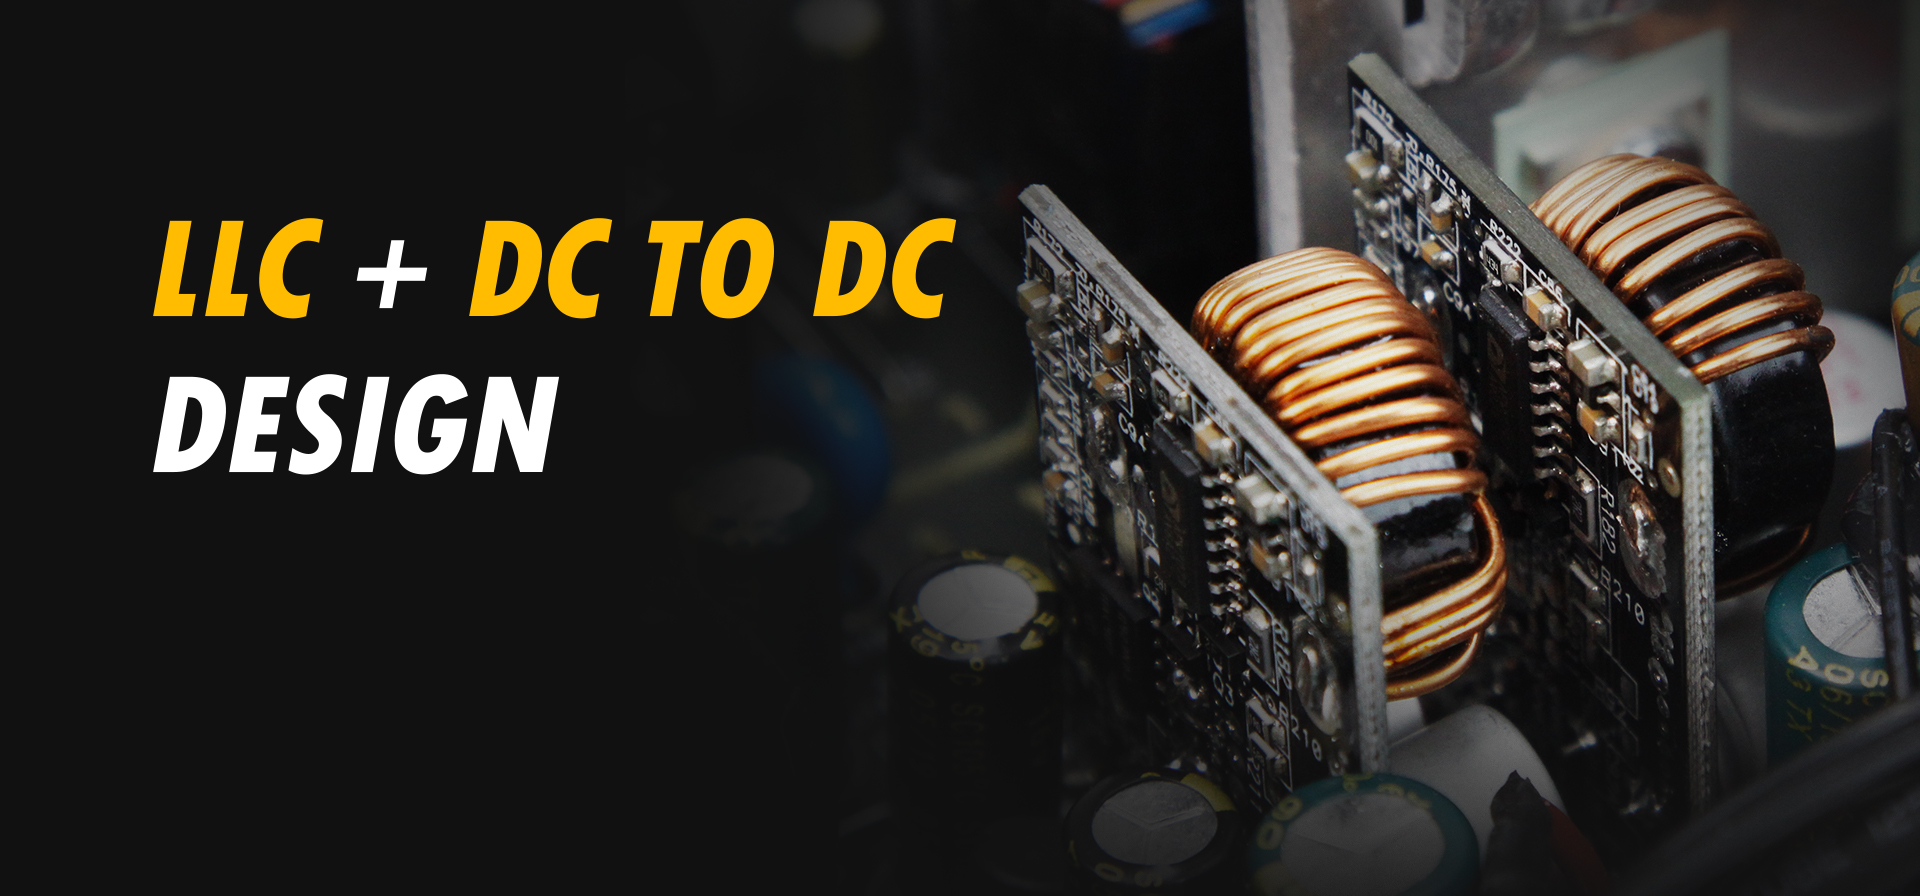 Antec NeoECO Gold ZEN Series NE600G ZEN Power Supply LLC + DC T0 DC close-up